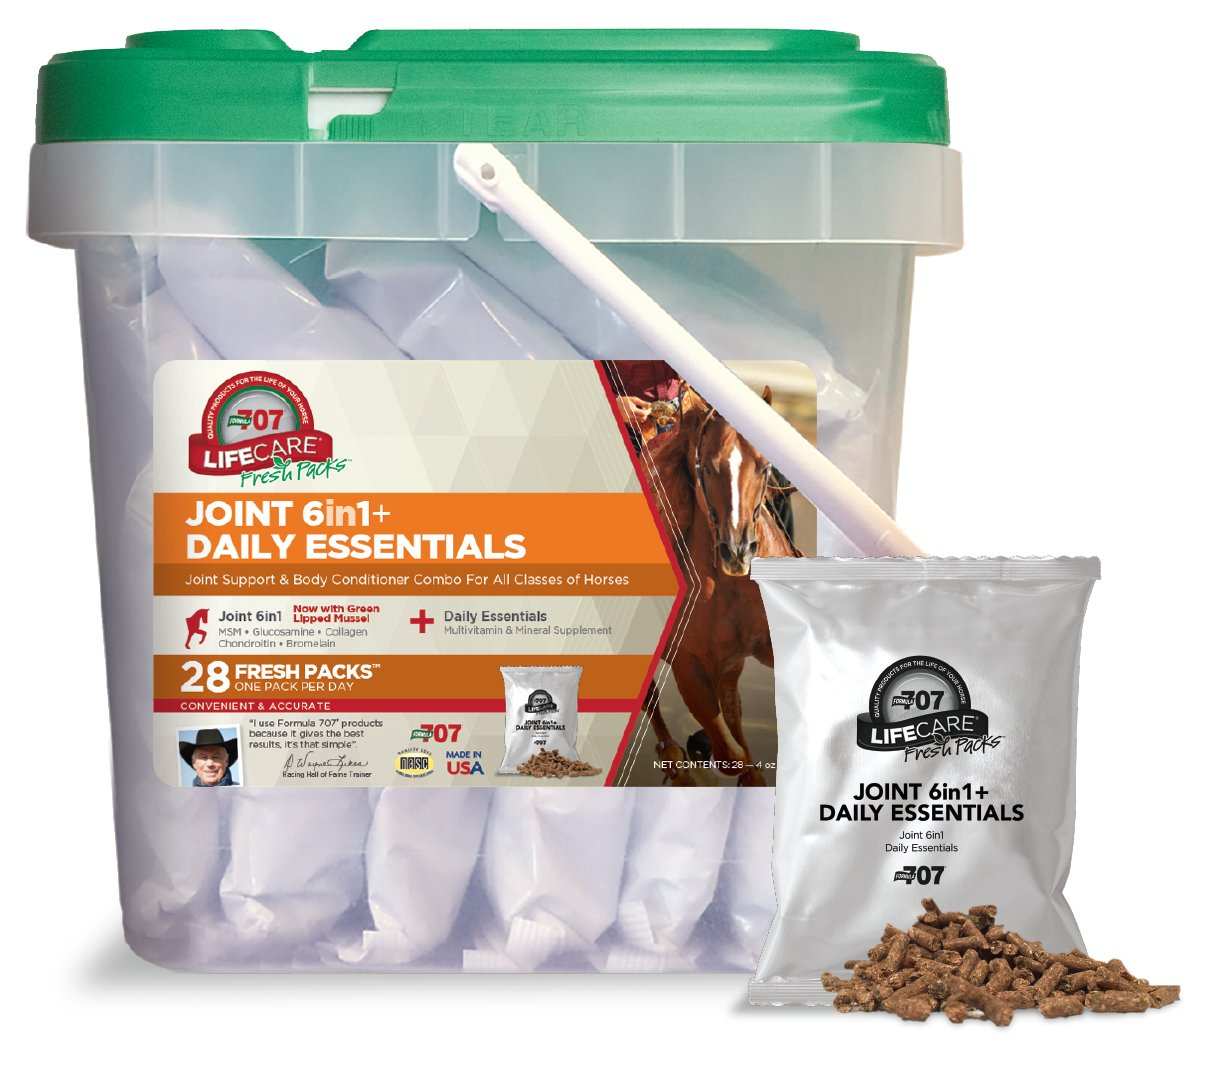 Formula 707 Joint 6in1 + Daily Essentials Combo Fresh Packs Equine Supplement, 28 Day Supply: Green-Lipped Mussel, Glucosamine, Chondroitin, Collagen, Bromelain & MSM + Complete Vitamins by Formula 707